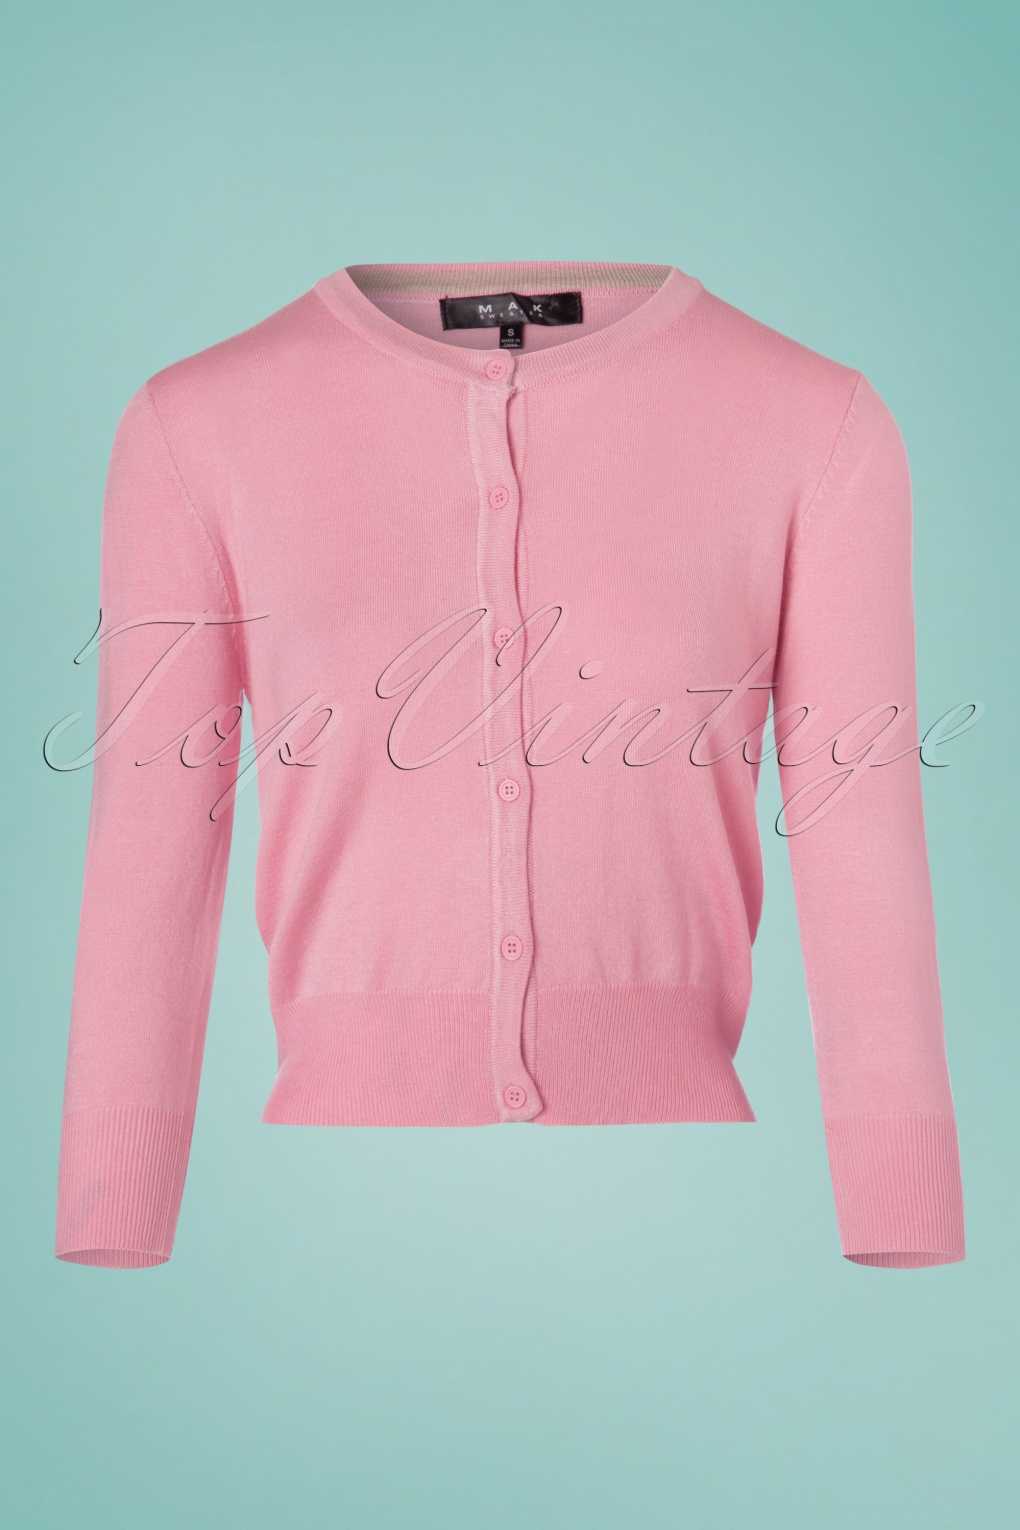 stories sek other main en product light model of back knitwear clothing image pink sweater sweaters in orange amour